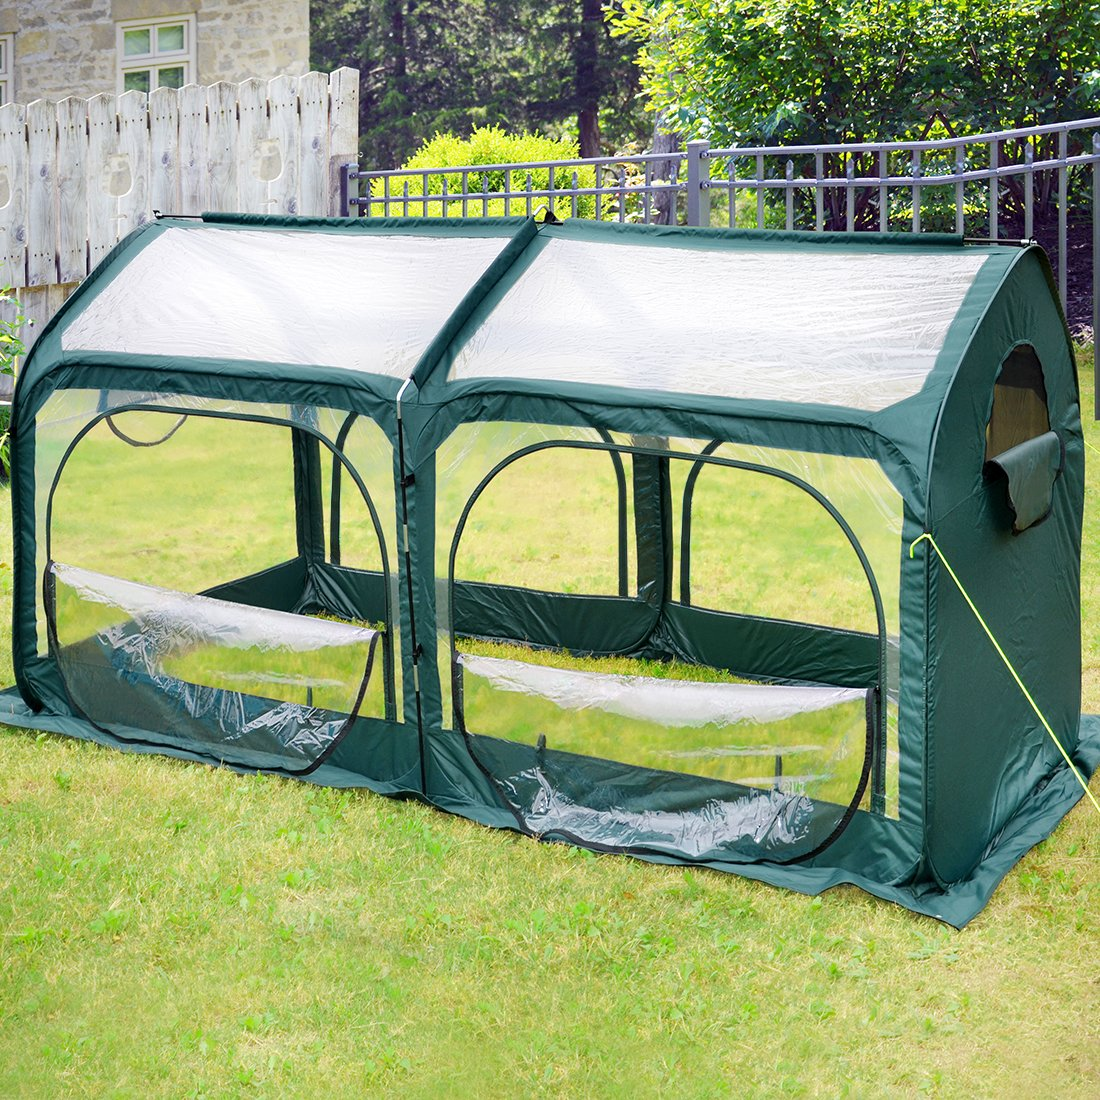 Quictent Pop up Greenhouse Passed SGS Test Eco-Friendly Fiberglass Poles Overlong Cover 6 Stakes 98 x 49 x 53 Inches Mini Portable Green House W/ 4 Zipper Door (Green) by Quictent